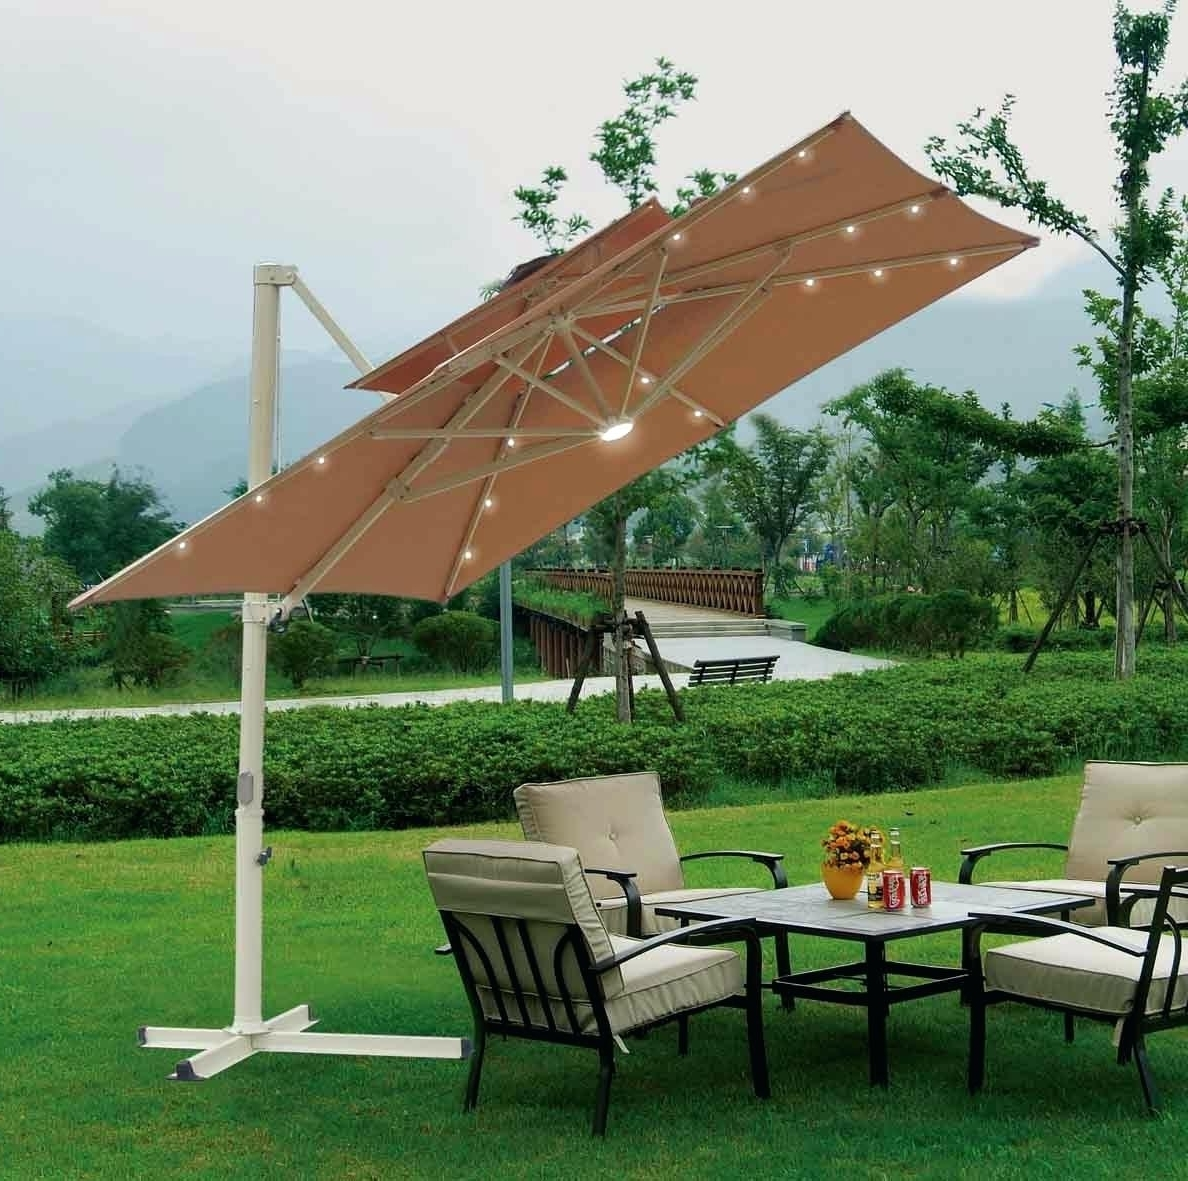 Fashionable Rectangular Offset Patio Umbrellas With Regard To Patio Umbrella Solar Lights Home Depot 10 Foot Wide Rectangular (View 4 of 20)